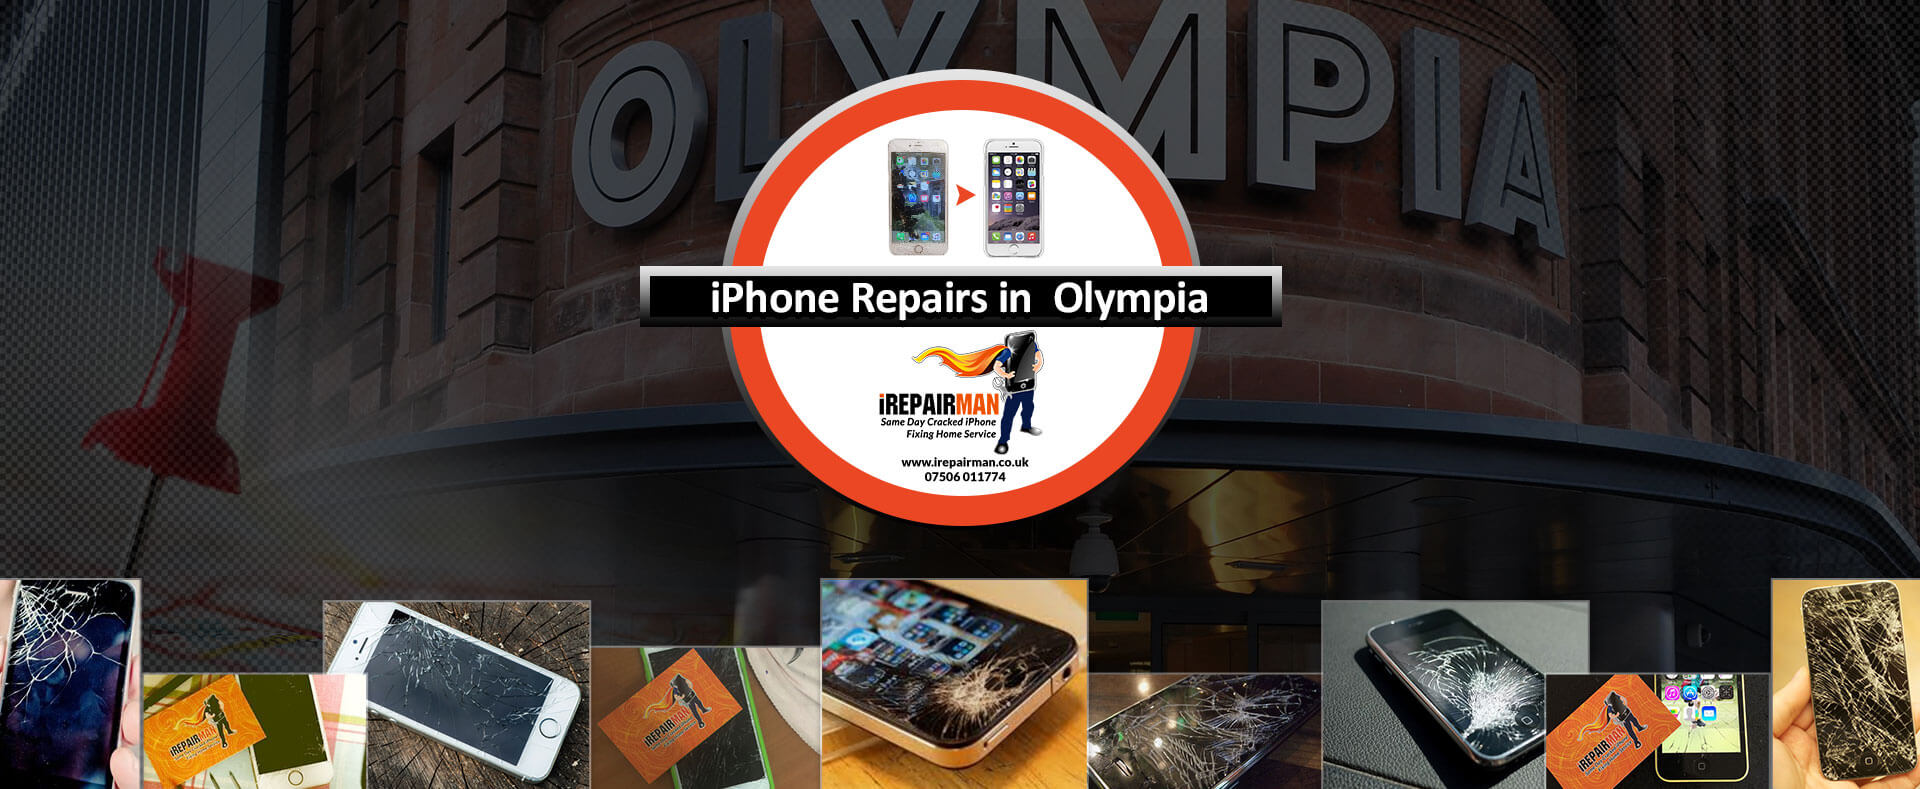 iPhone Repairs in Olympia